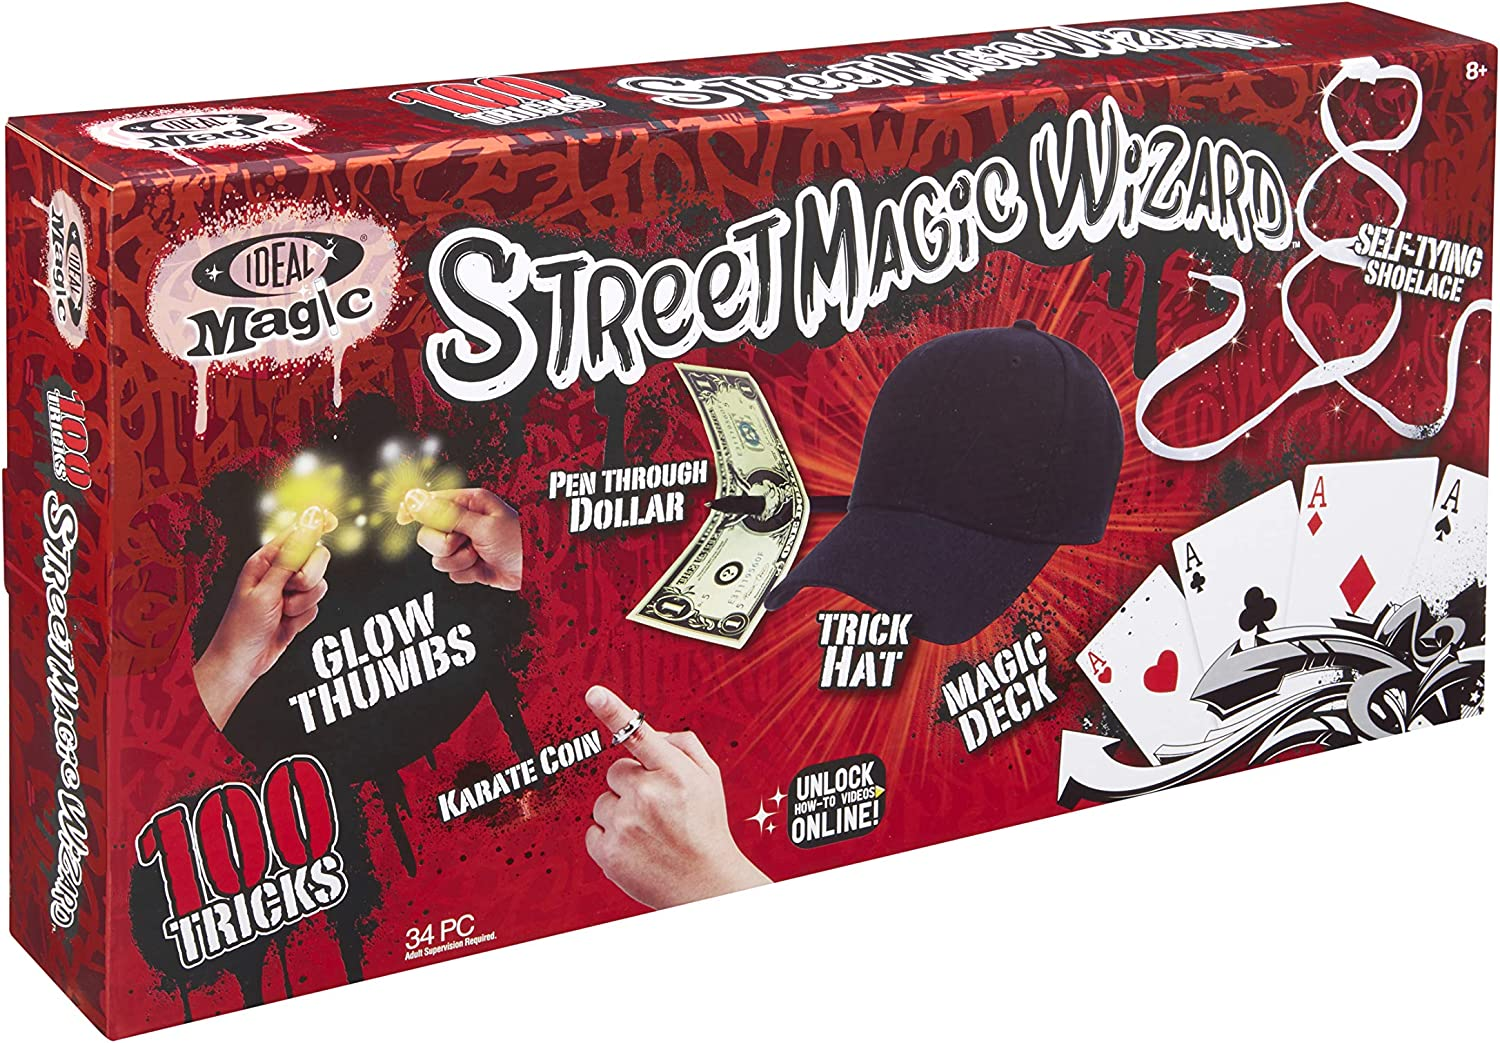 Ideal Magic Street Magic Wizard 100 Tricks Kids Magic Set